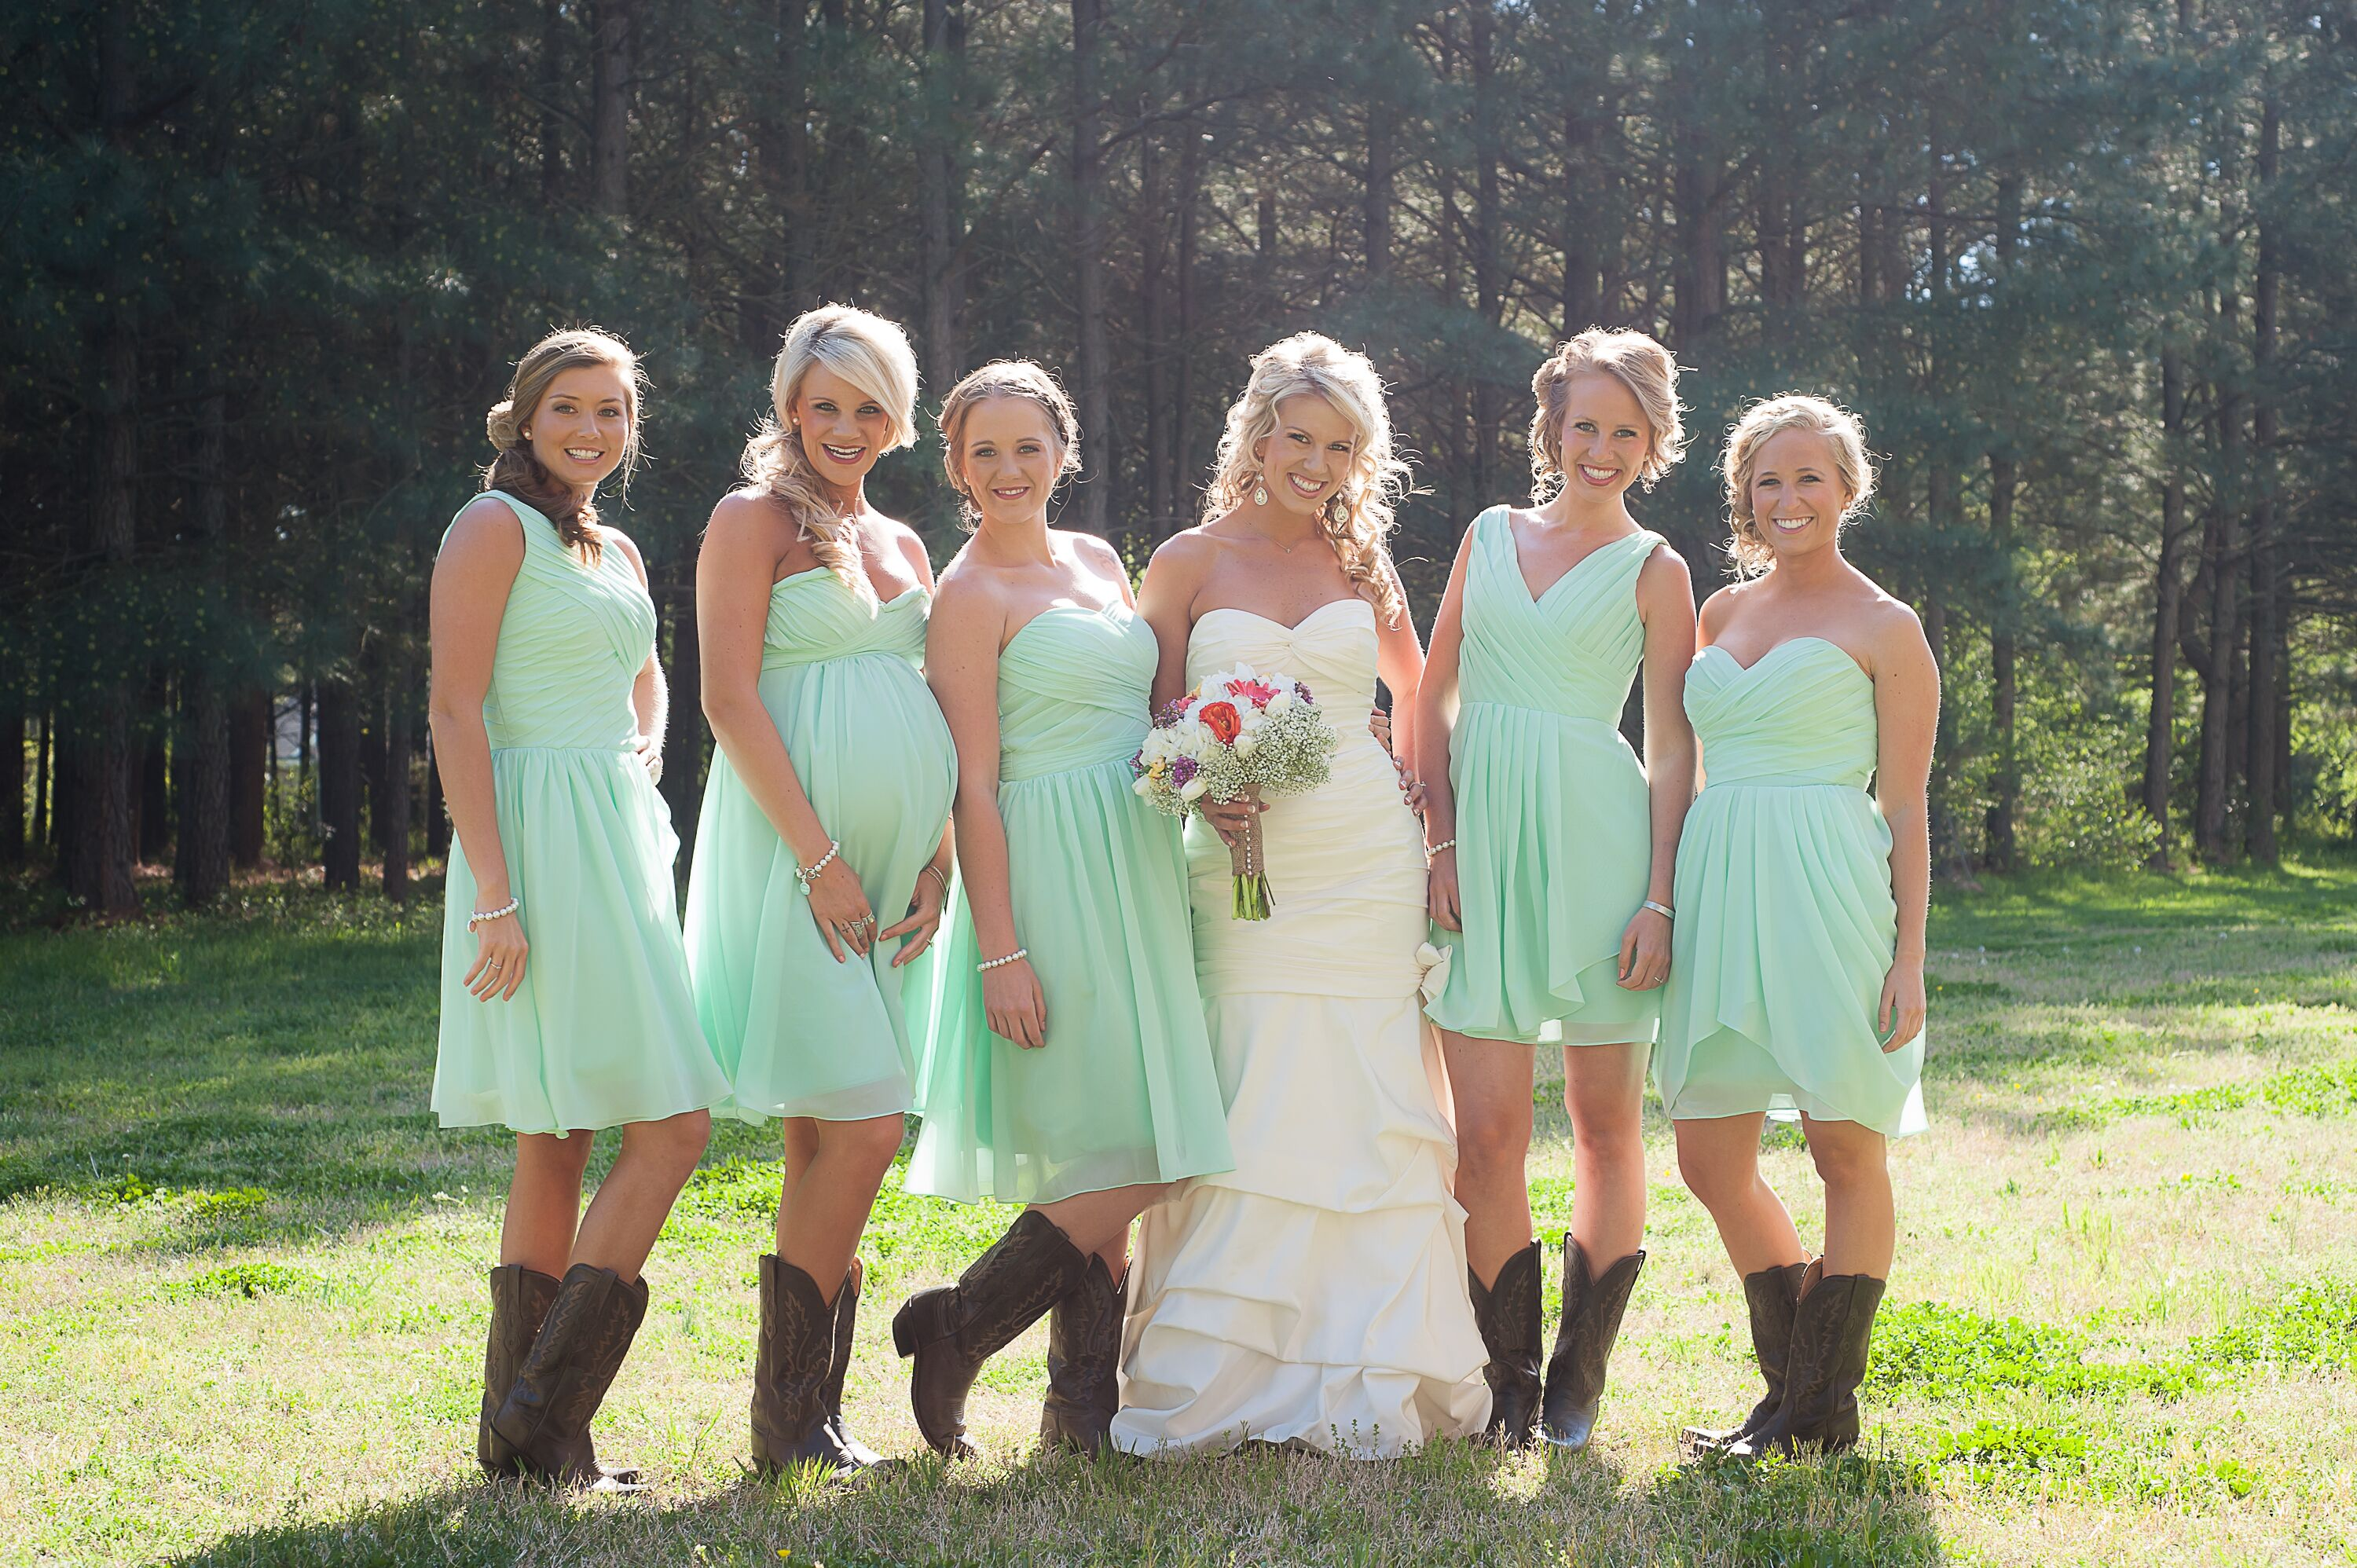 Bridesmaids in Mint Dresses With Cowboy Boots